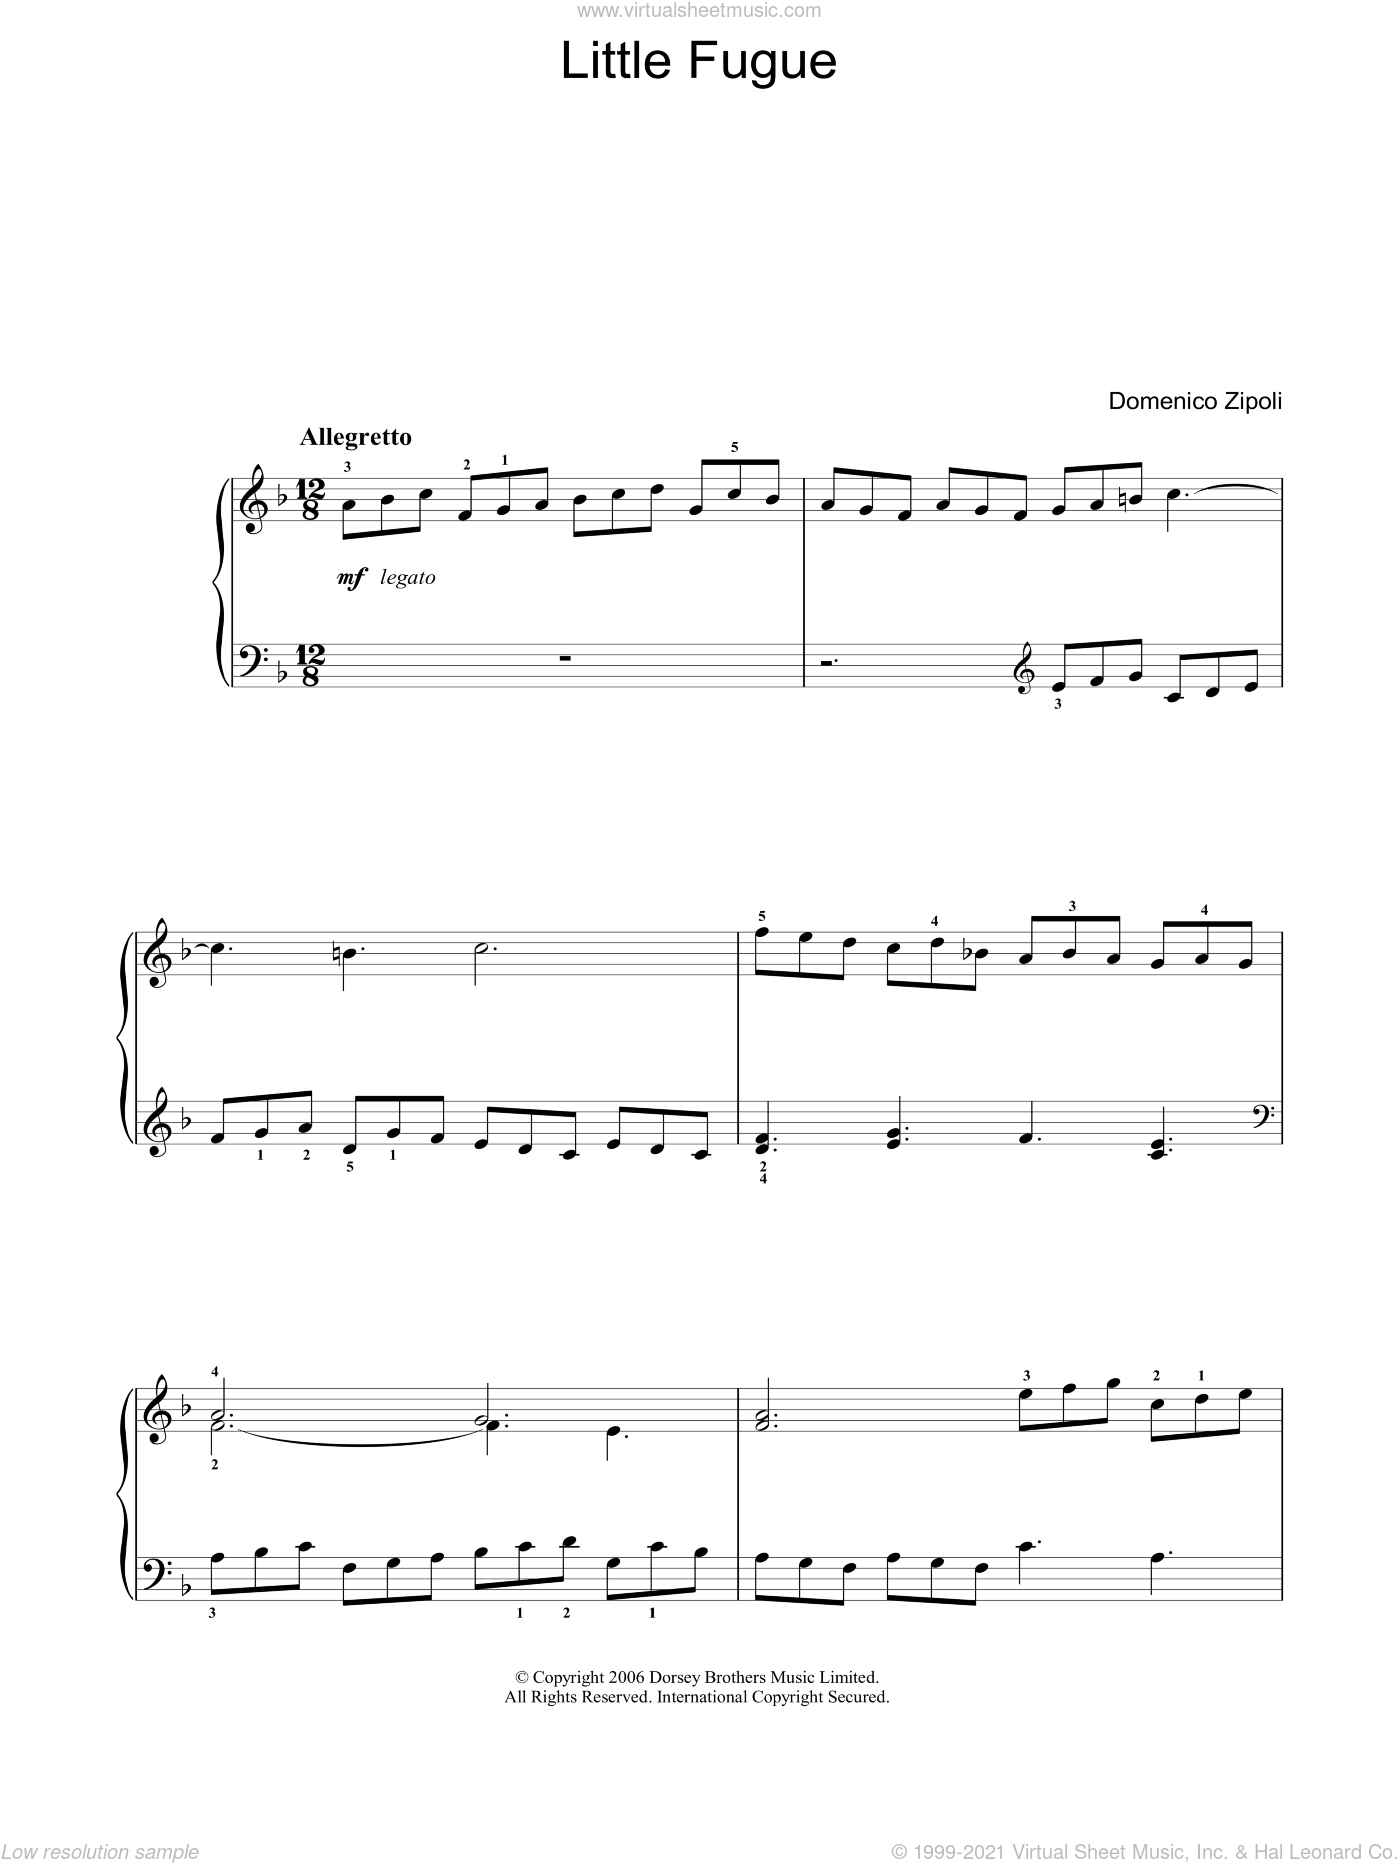 Little Fugue sheet music for voice, piano or guitar by Domenico Zipoli